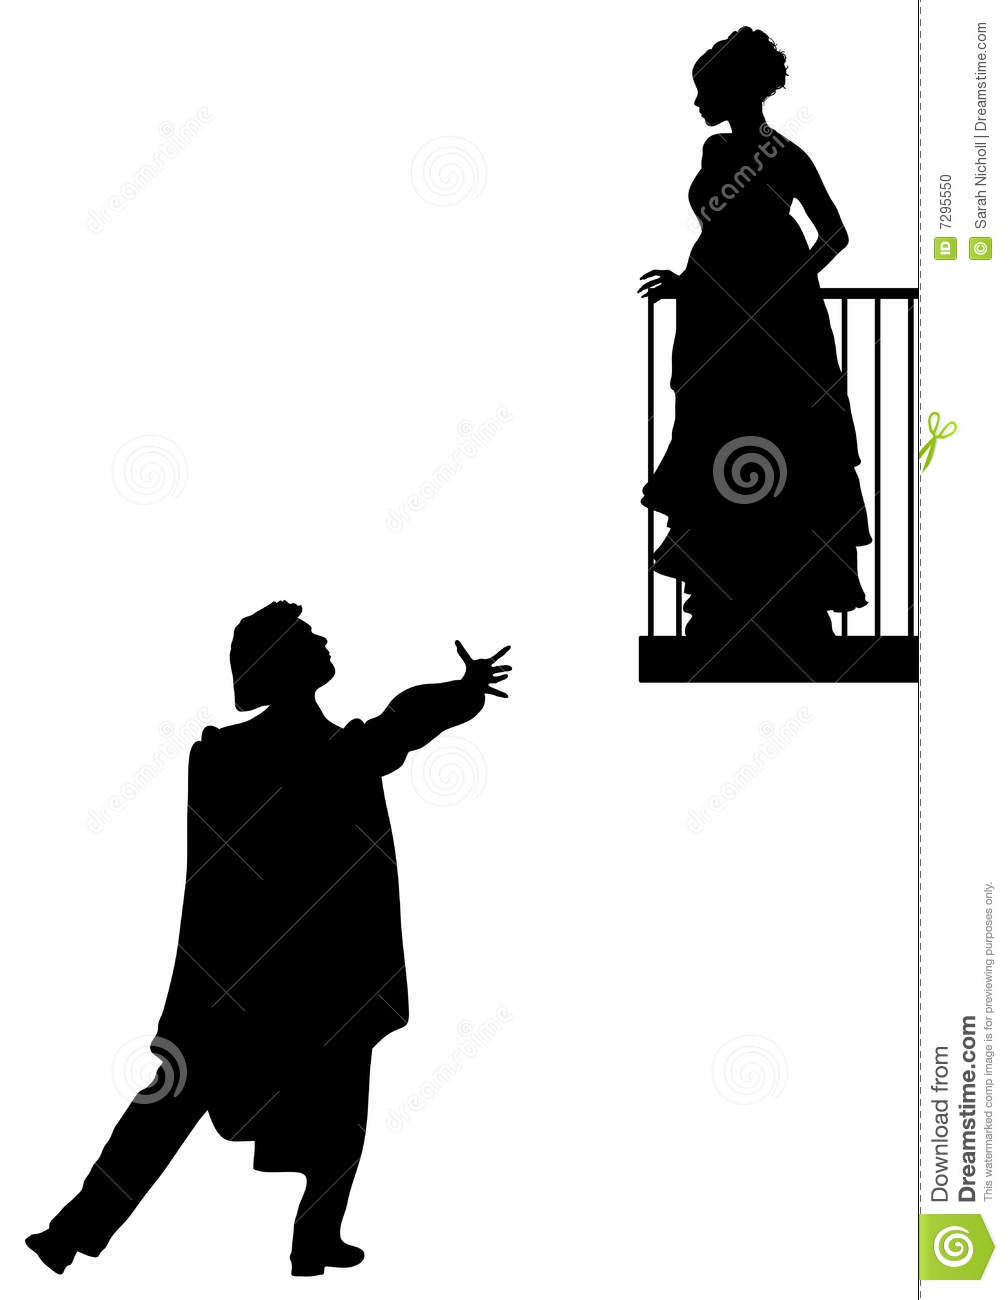 Romeo and juliet clipart